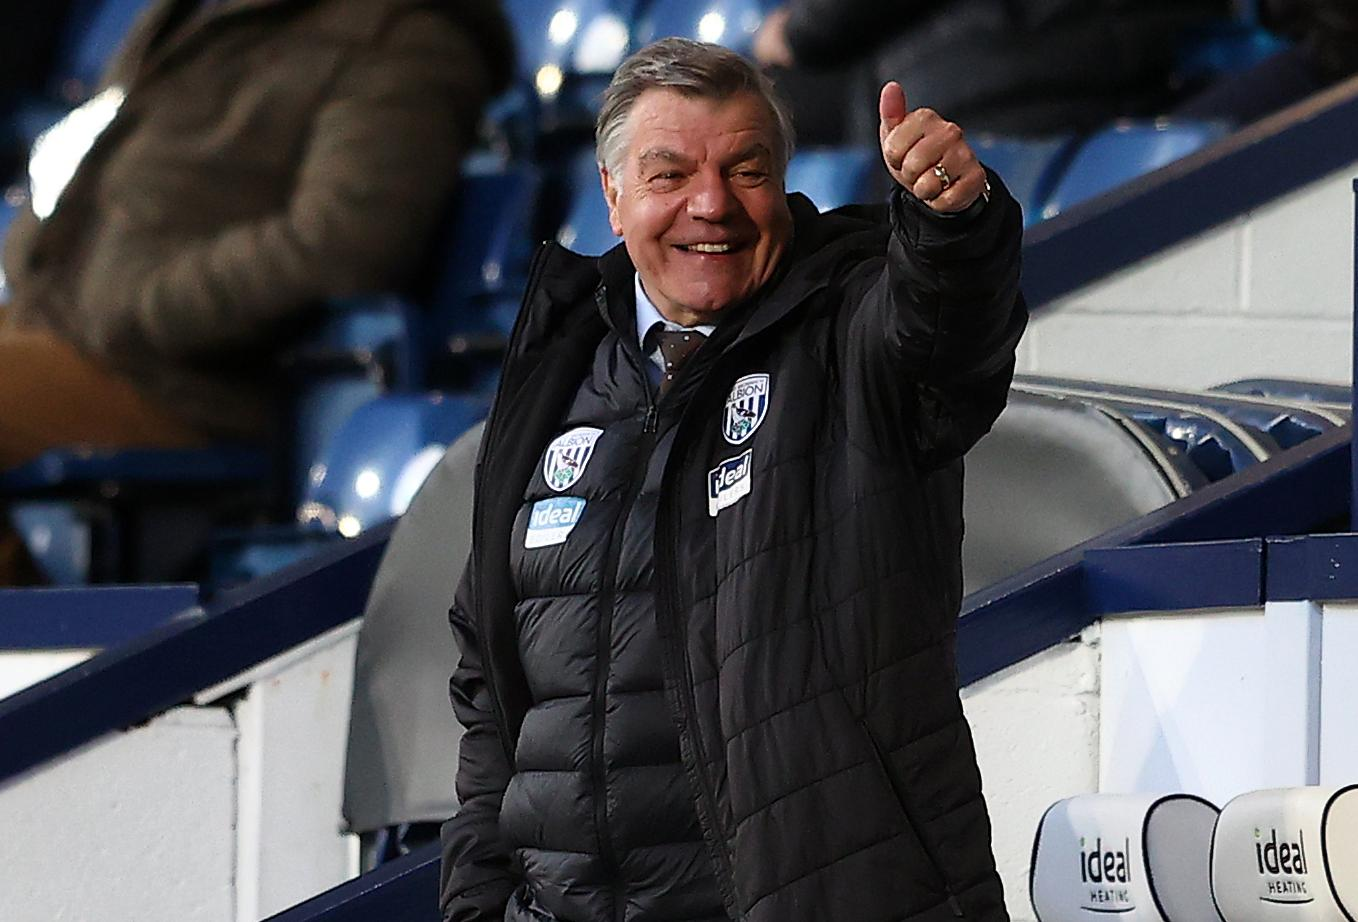 leicester city vs west brom - photo #11